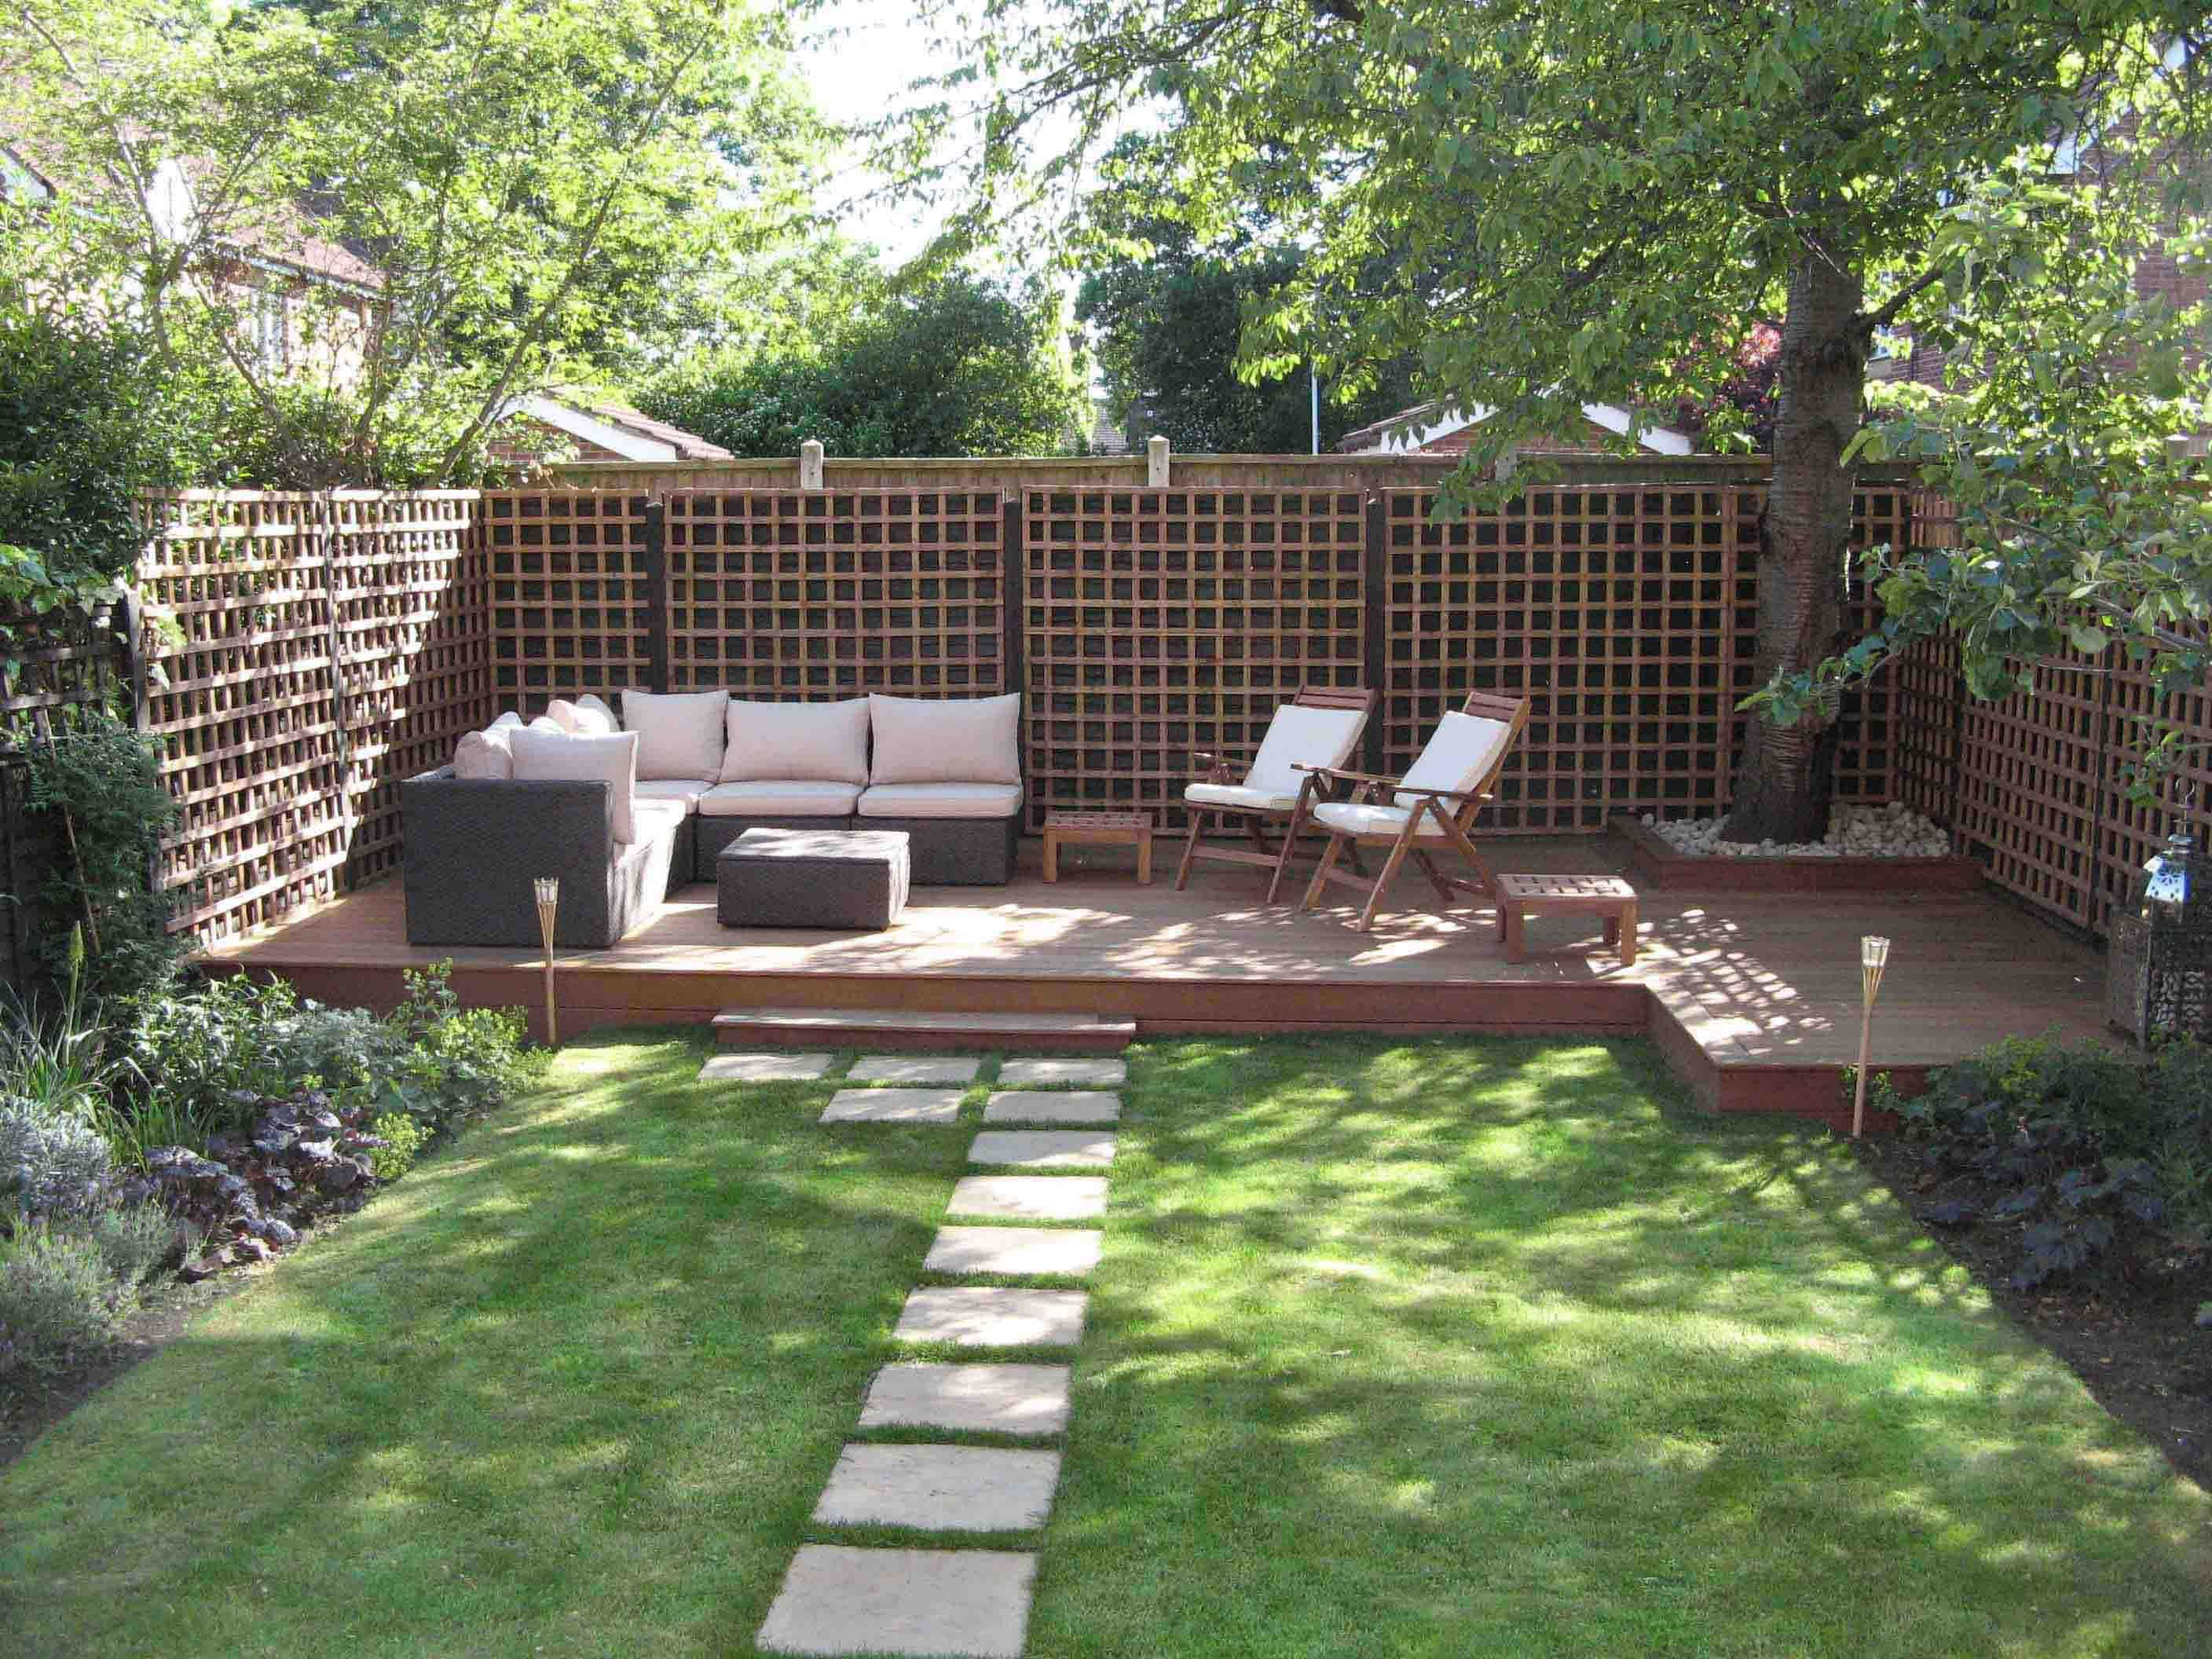 Landscape Design For Small Spaces Low Deck Yards And Decking